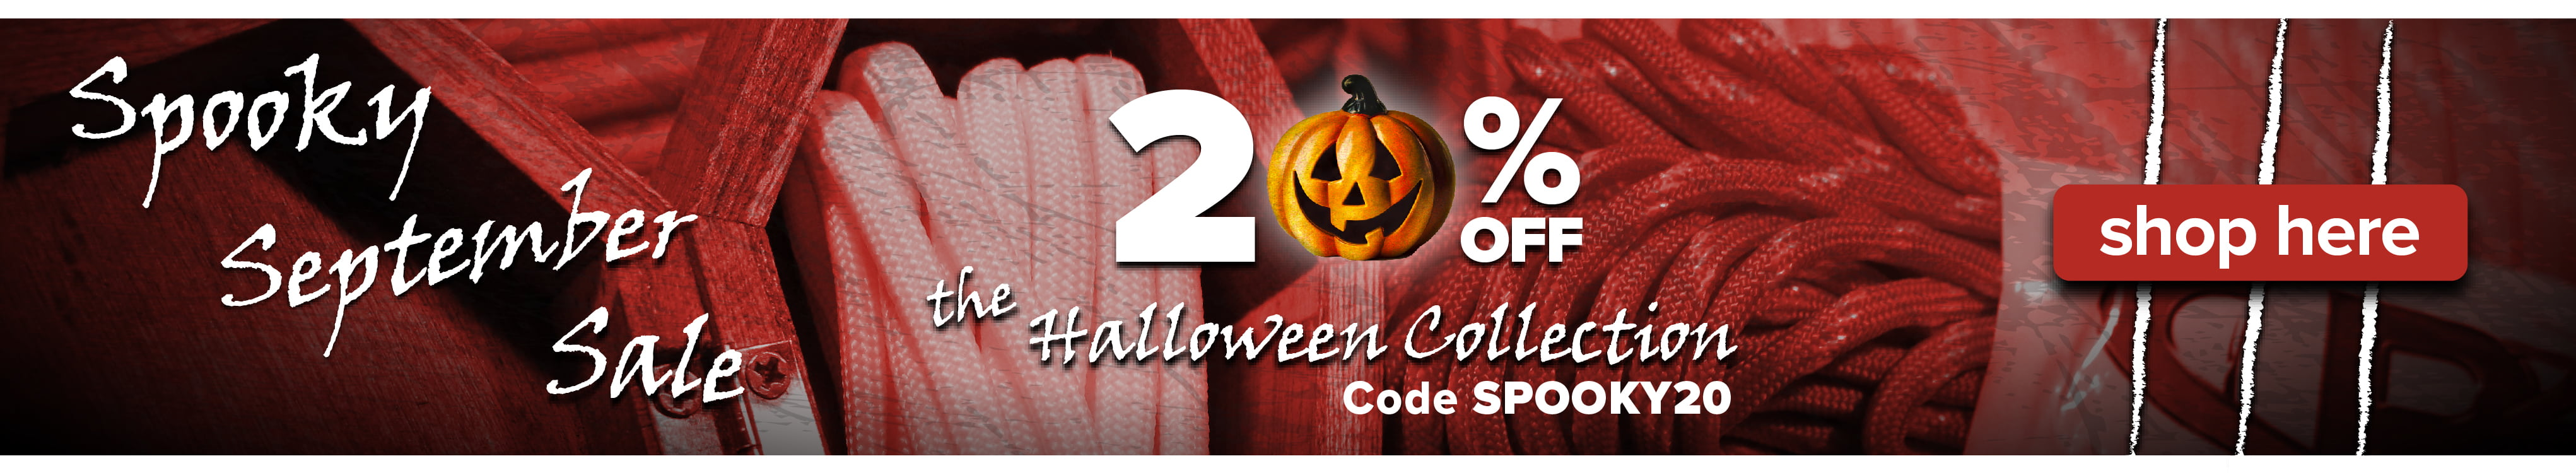 Take 20% off the Halloween Collection for Spooky September